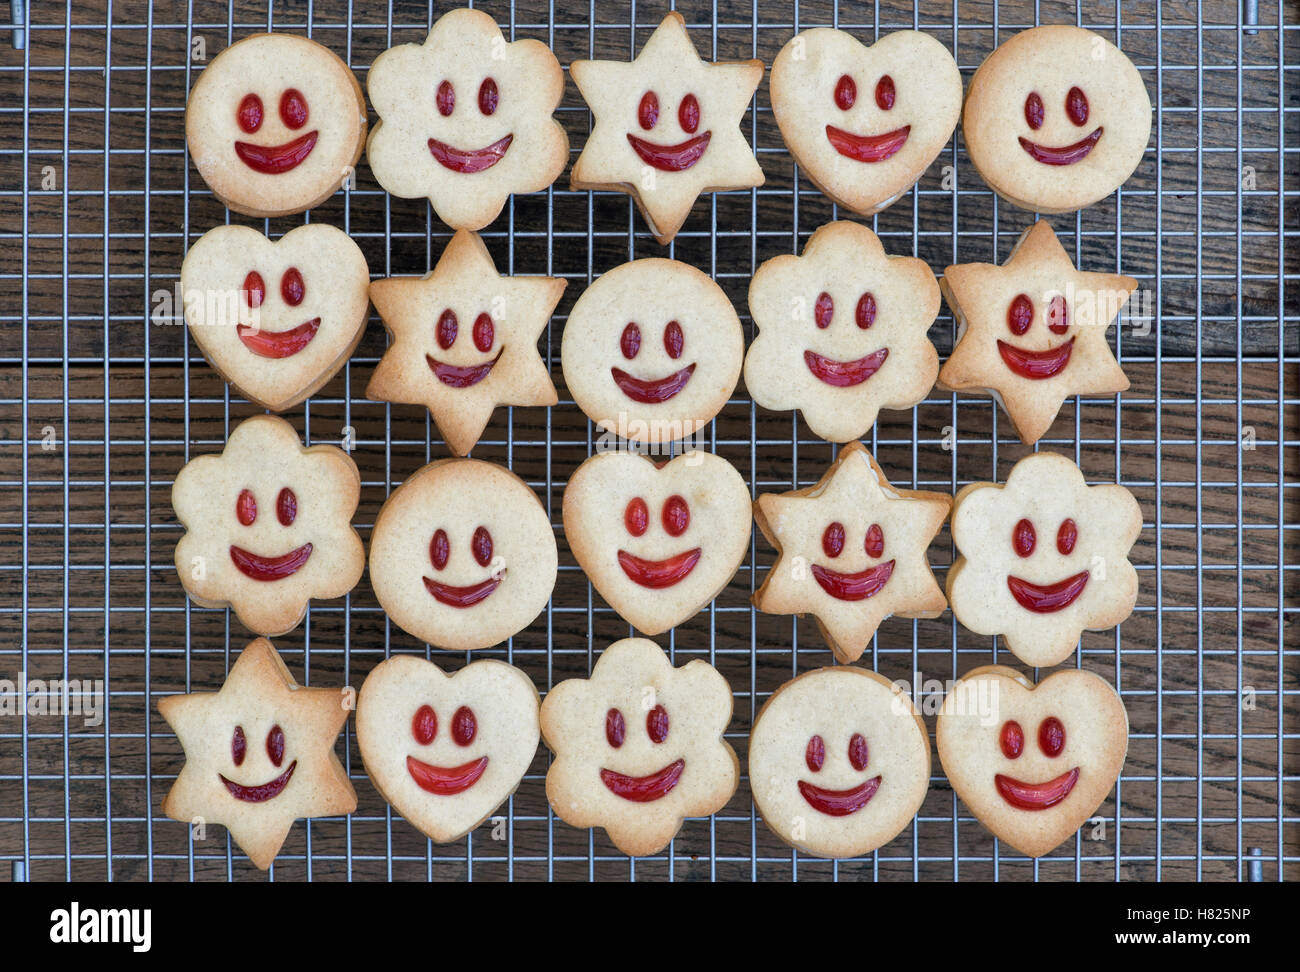 Homemade Jammie Dodgers. Smiling face biscuits faces on a wire rack - Stock Image